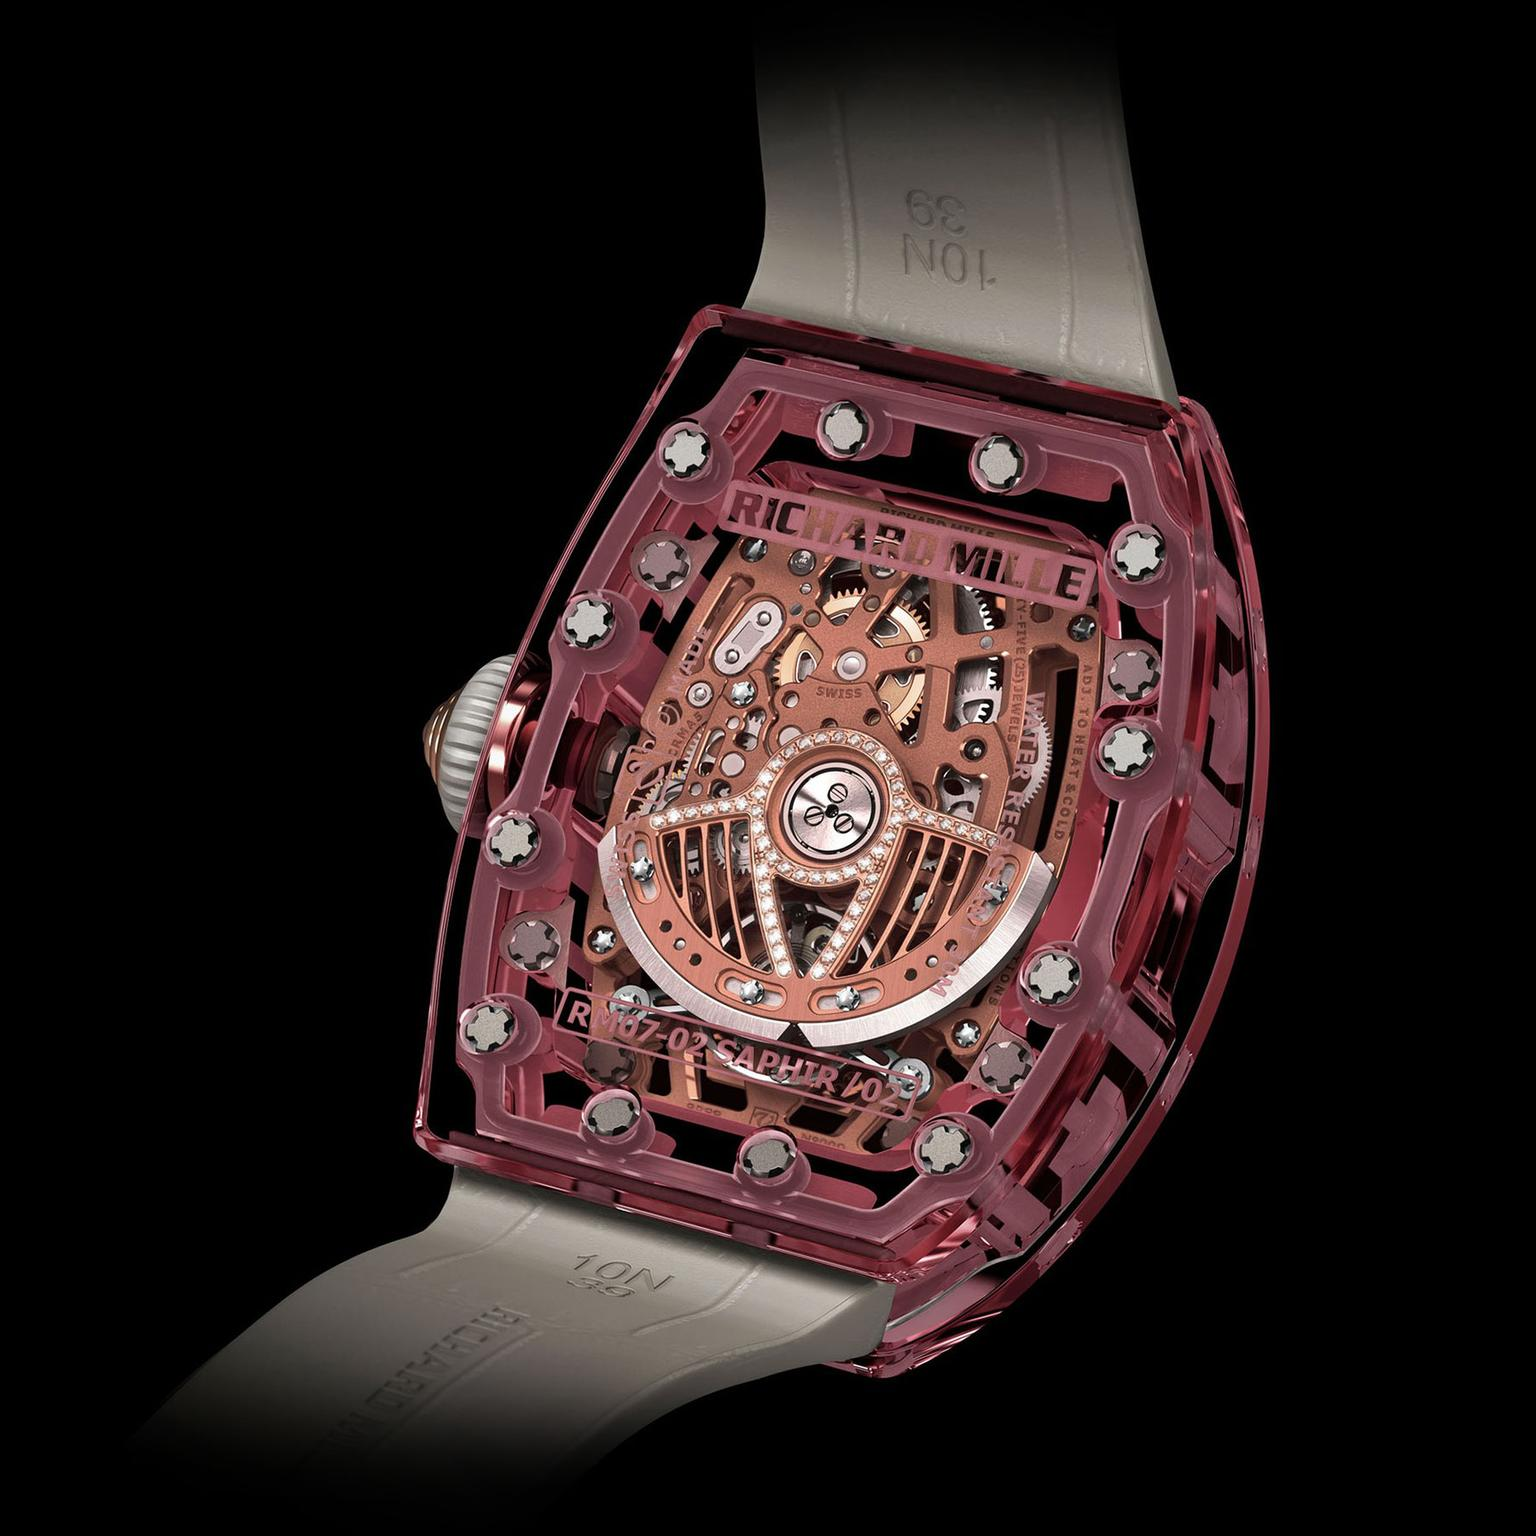 The reverse of the Richard Mille RM 07-02 Pink Lady Sapphire watch